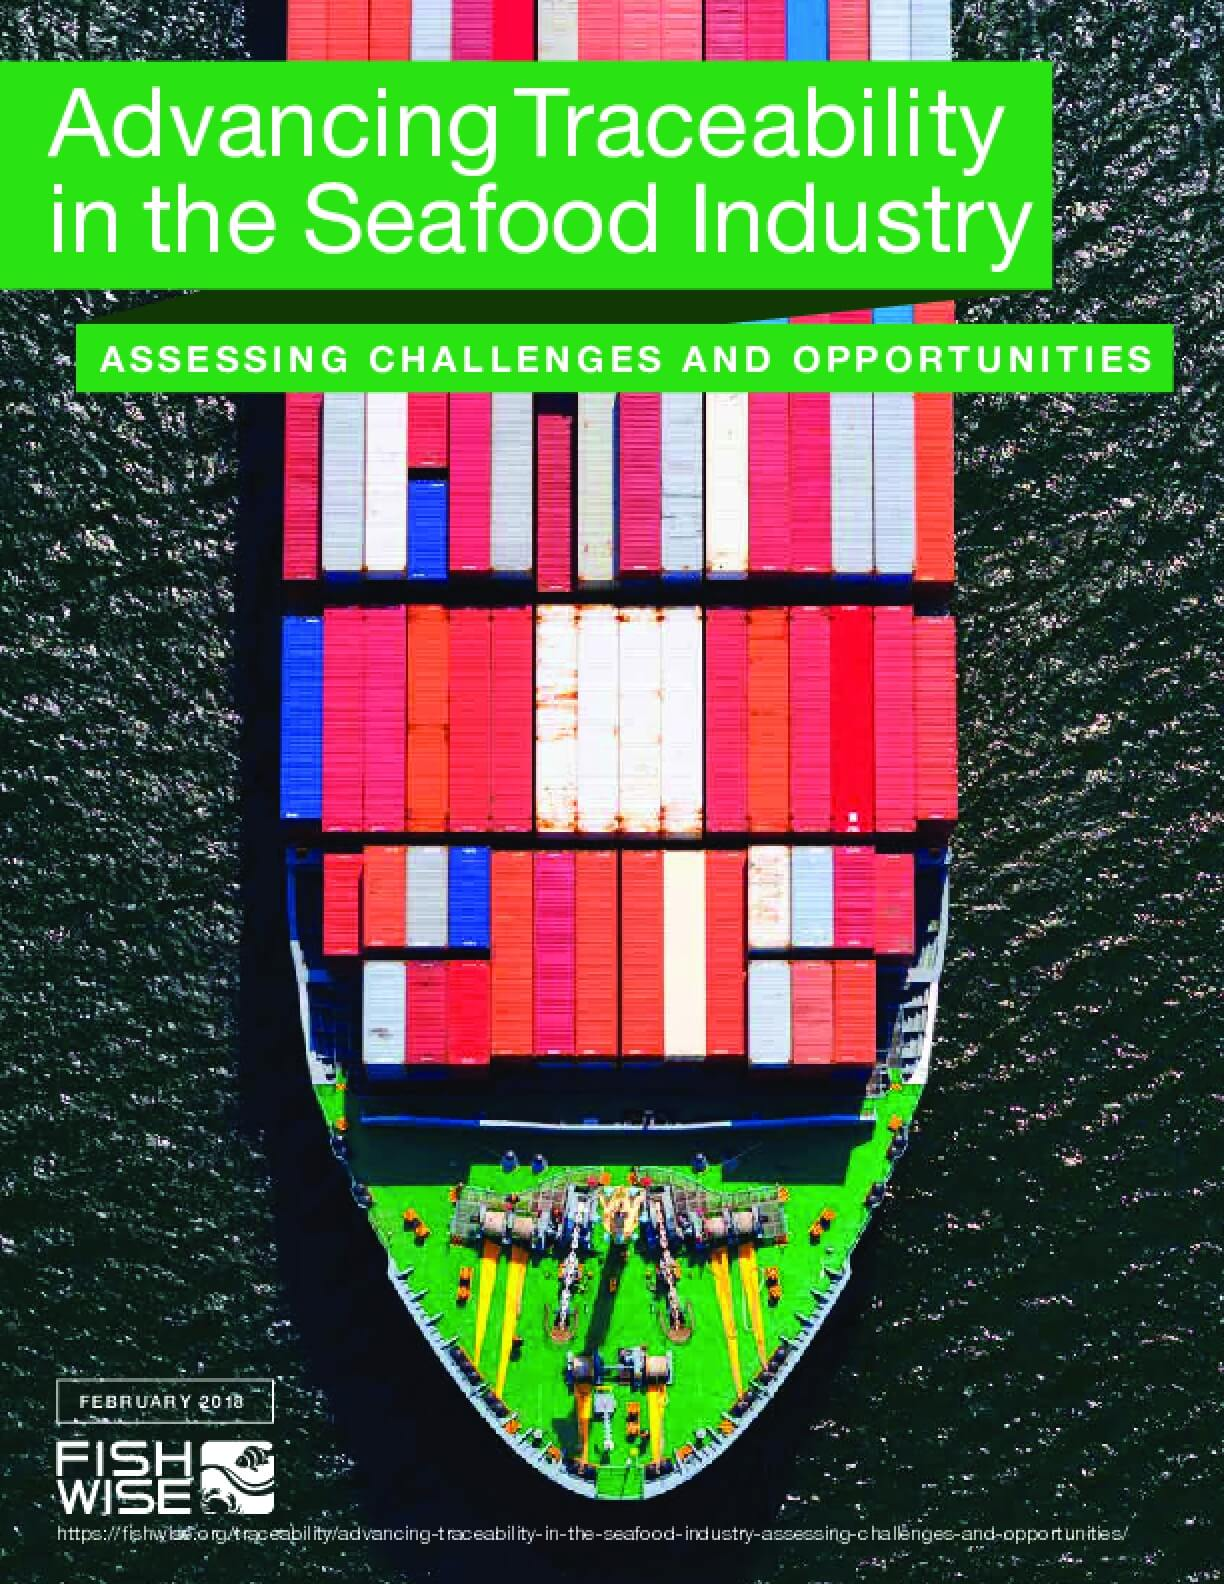 Advancing Traceability in the Seafood Industry: Addressing Challenges and Opportunities